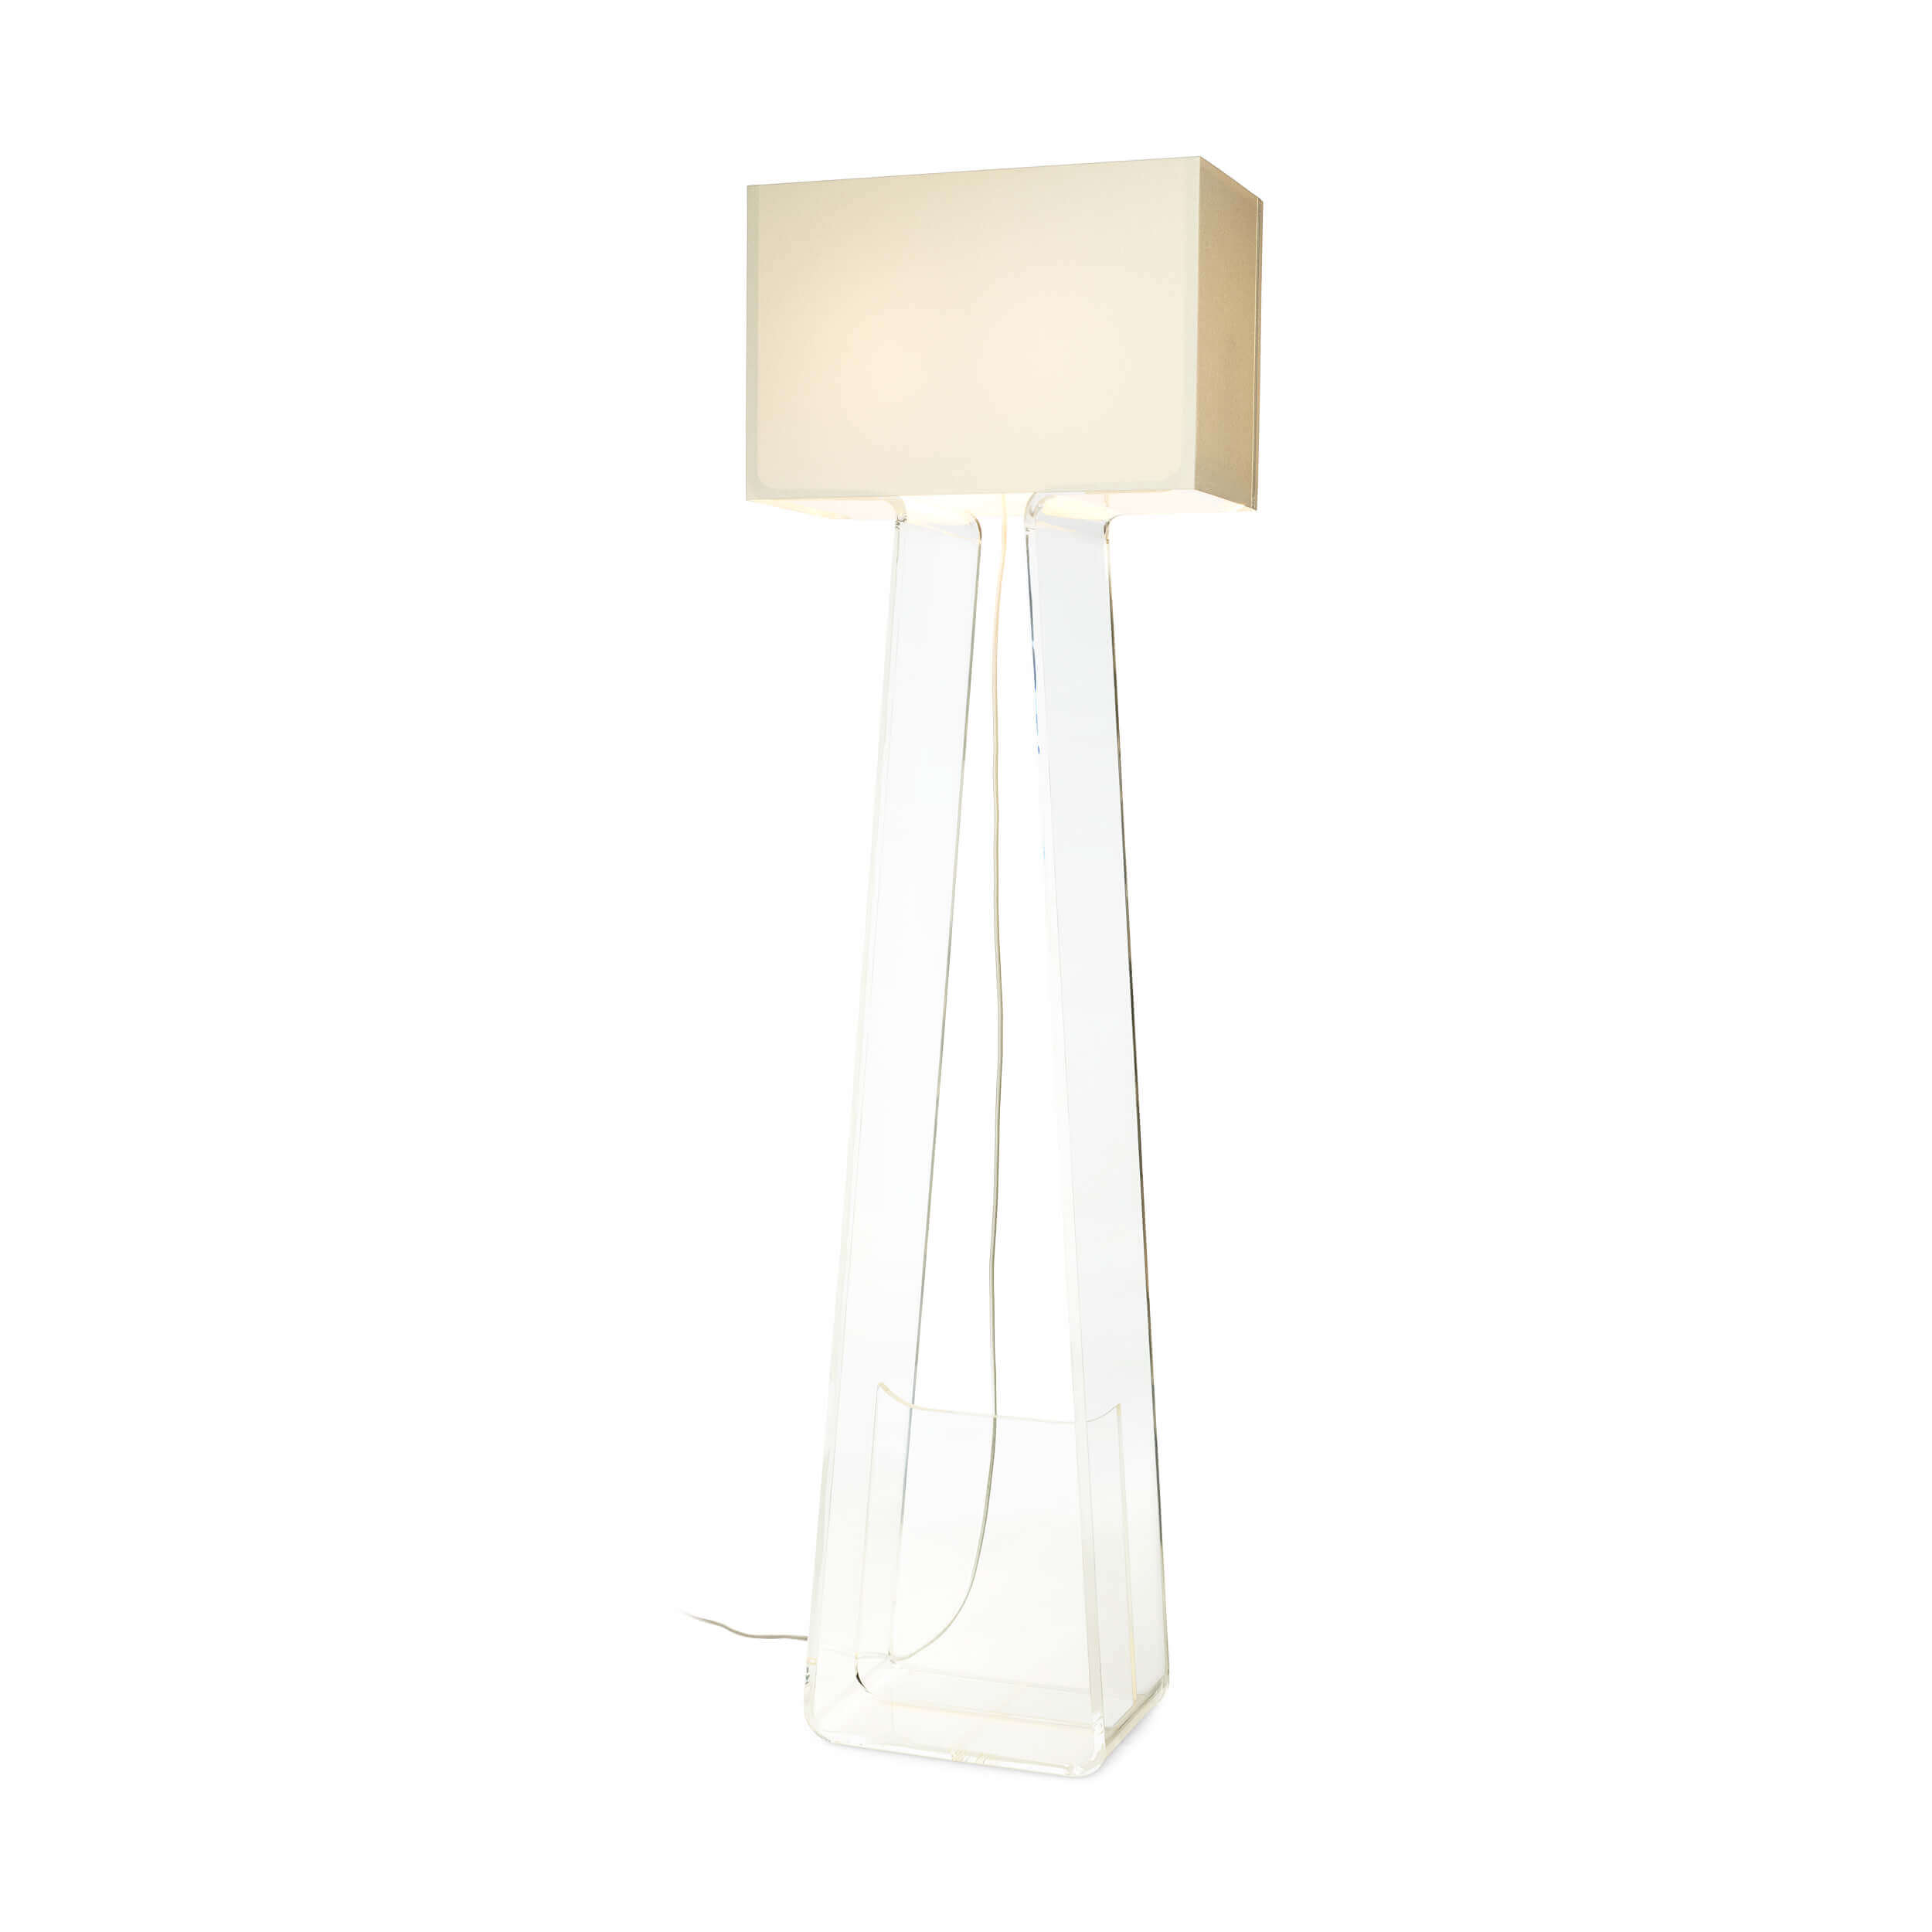 new style a6261 88c56 Tube Top Floor Lamp - 60